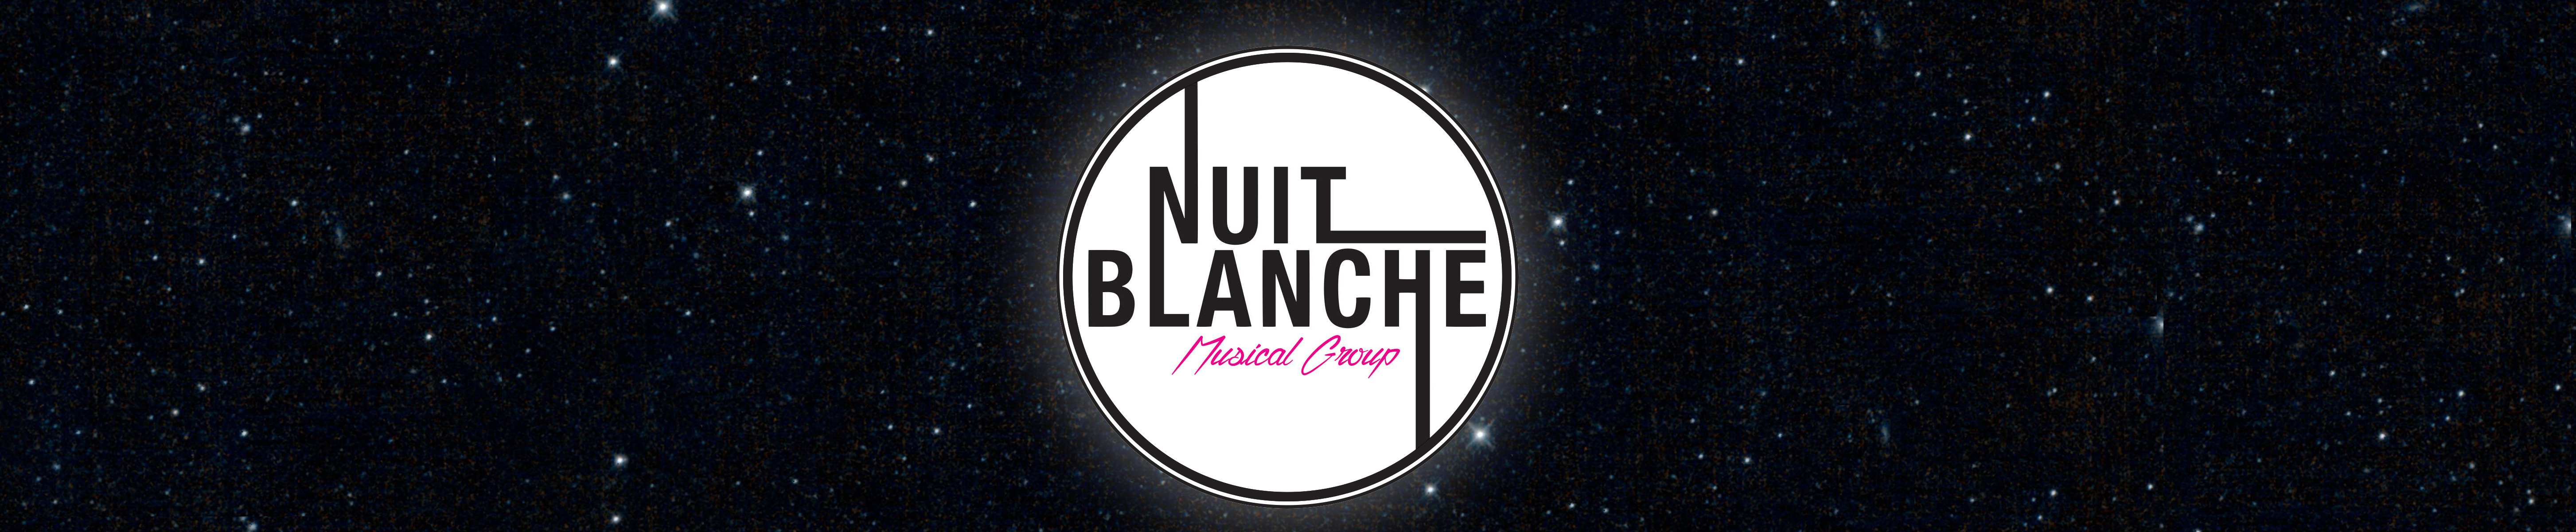 Groupe Nuit Blanche